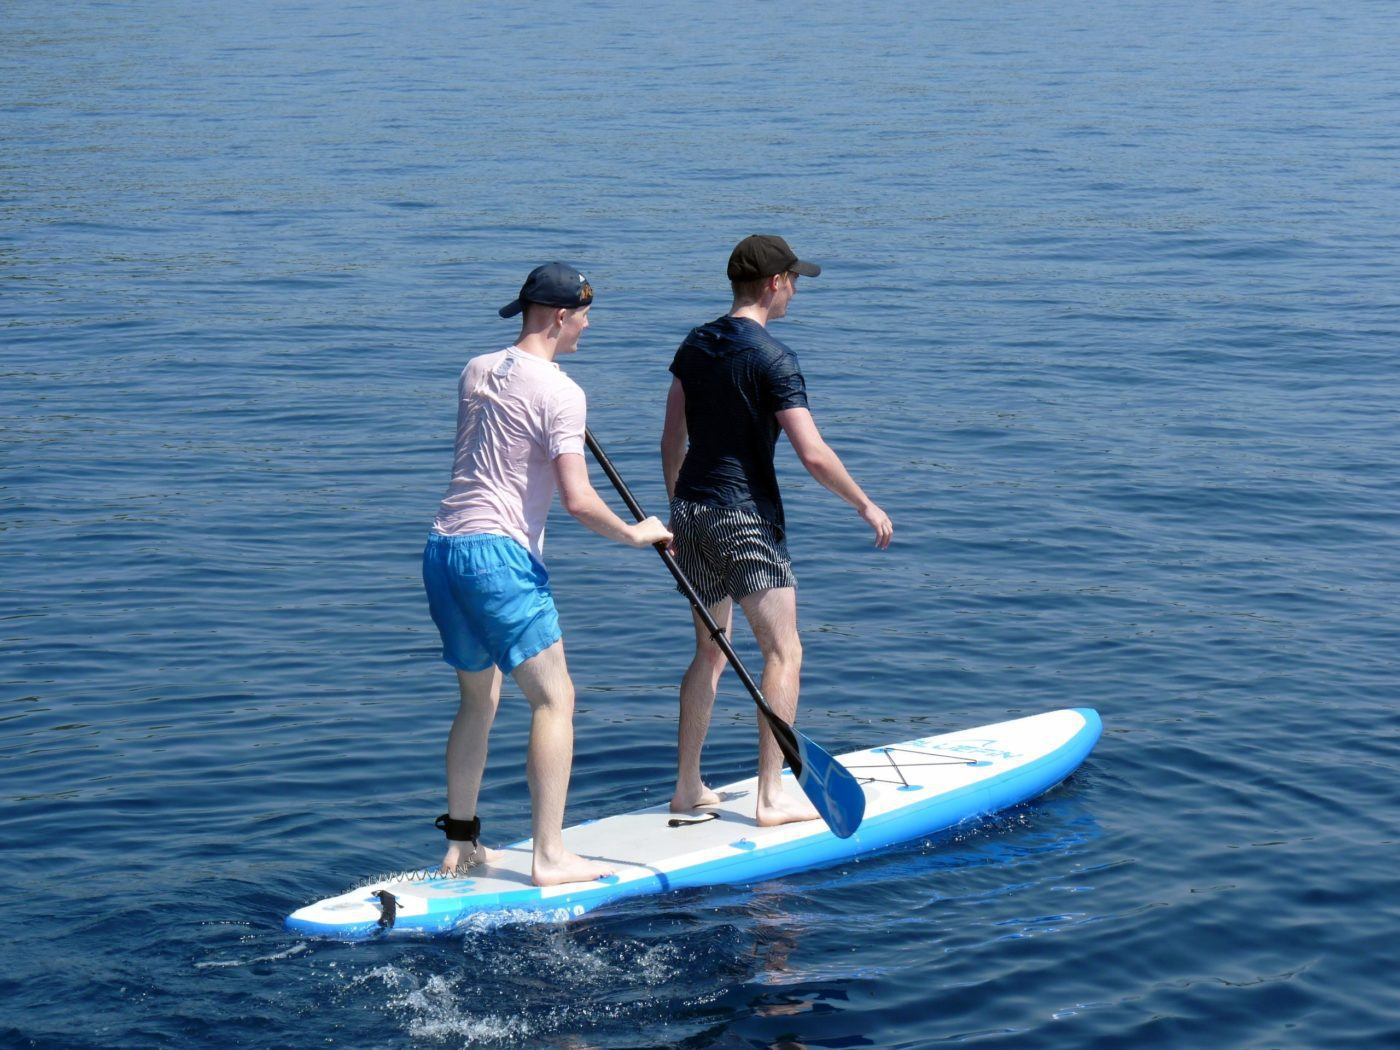 Activity Holidays Greece 2 guys tandem paddle on SUP